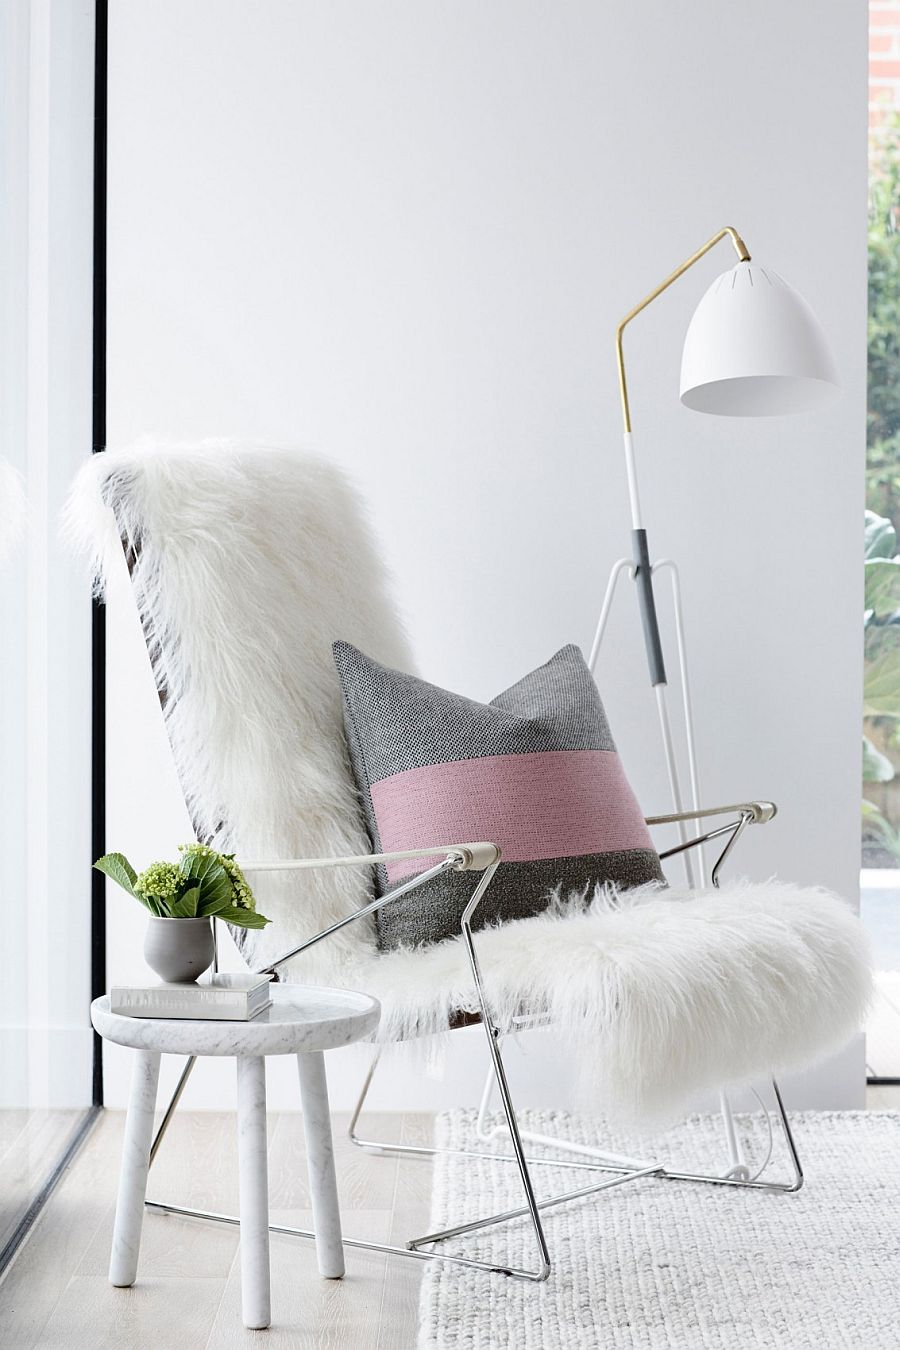 Plush decor and pinks add femininity to the space